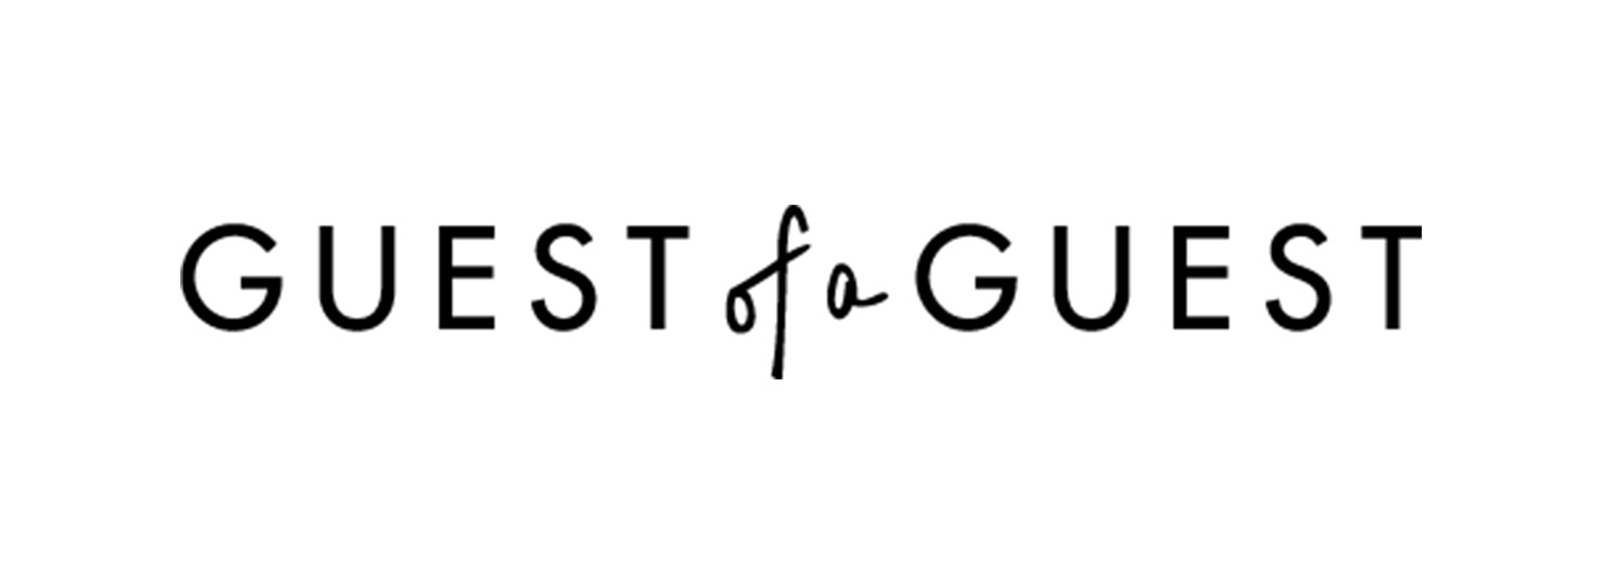 0_1_0000s_0043_Guest-of-a-Guest.png